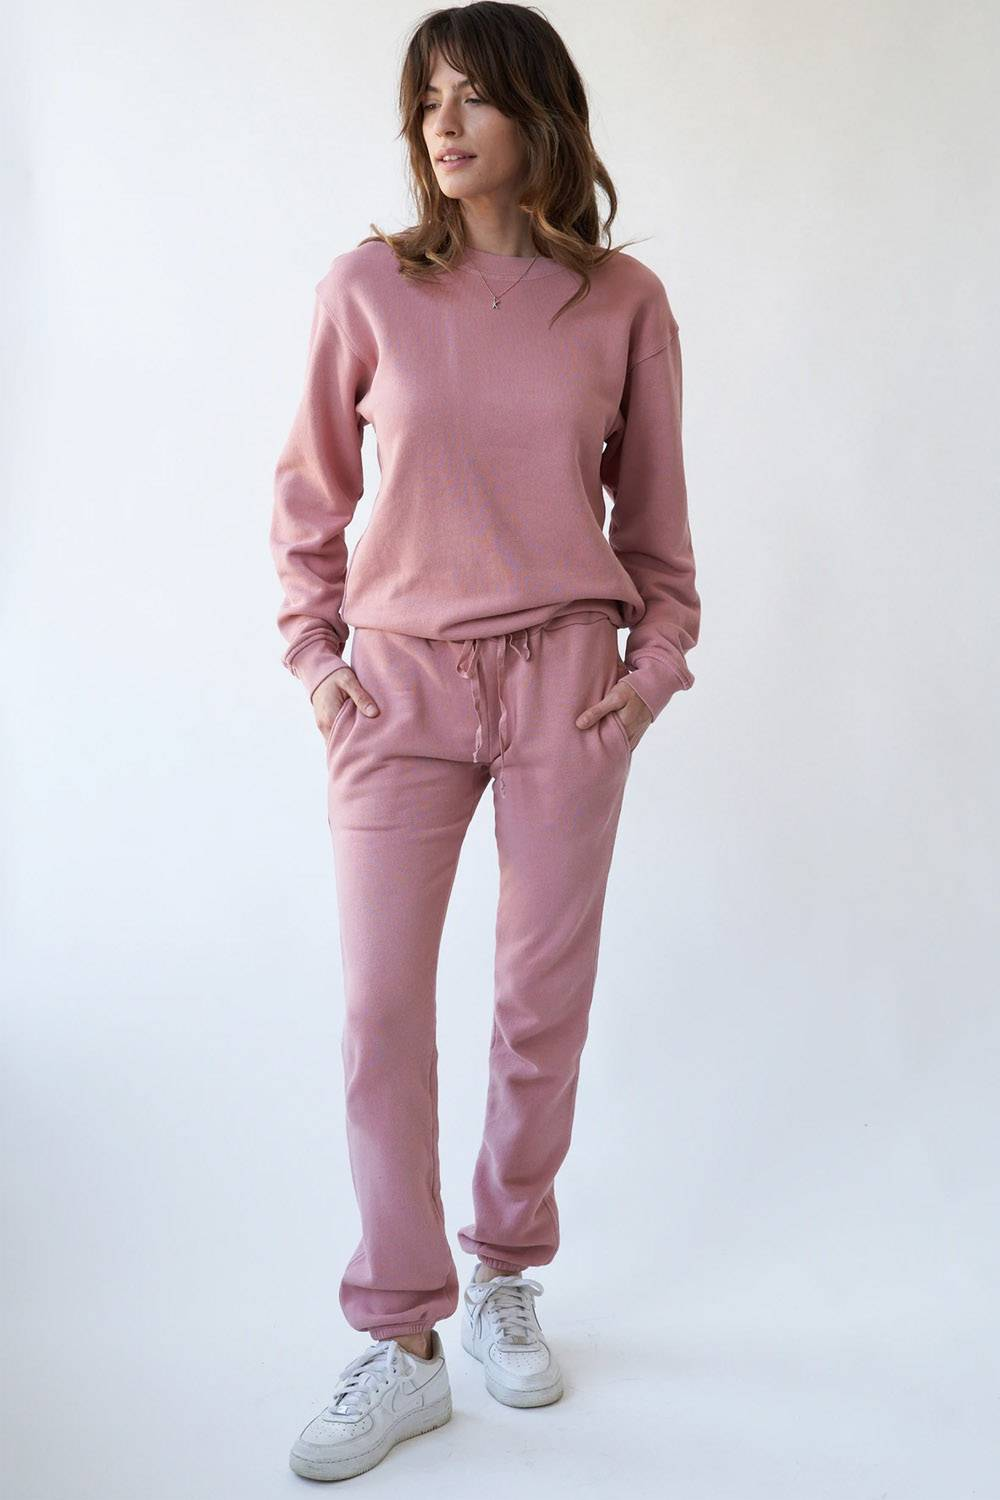 la relaxed sweatpants made in usa